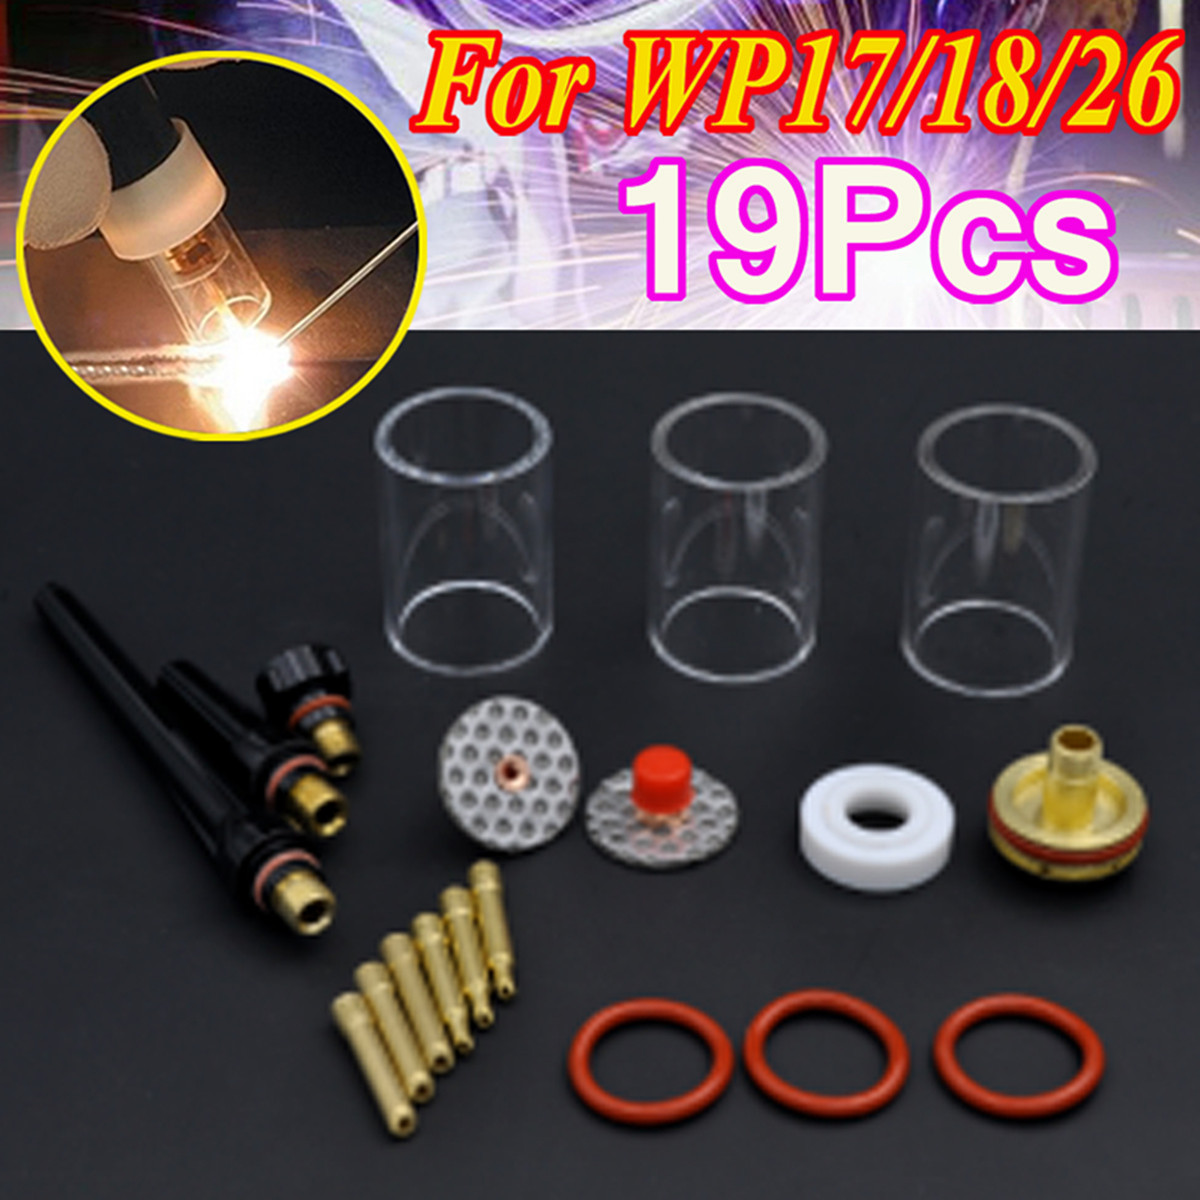 19PCs 1.0mm+2.4mm TIG Welding Torch Kit Tungsten Needle Clip Stubby Collet Body Gas Lens Pyrex Glass Cup for WP-17/18/26 Series 17pcs tig welding torch stubby collet gas lens glass nozzle pryex cup kit with heat resistant o rings for wp 17 18 26 series